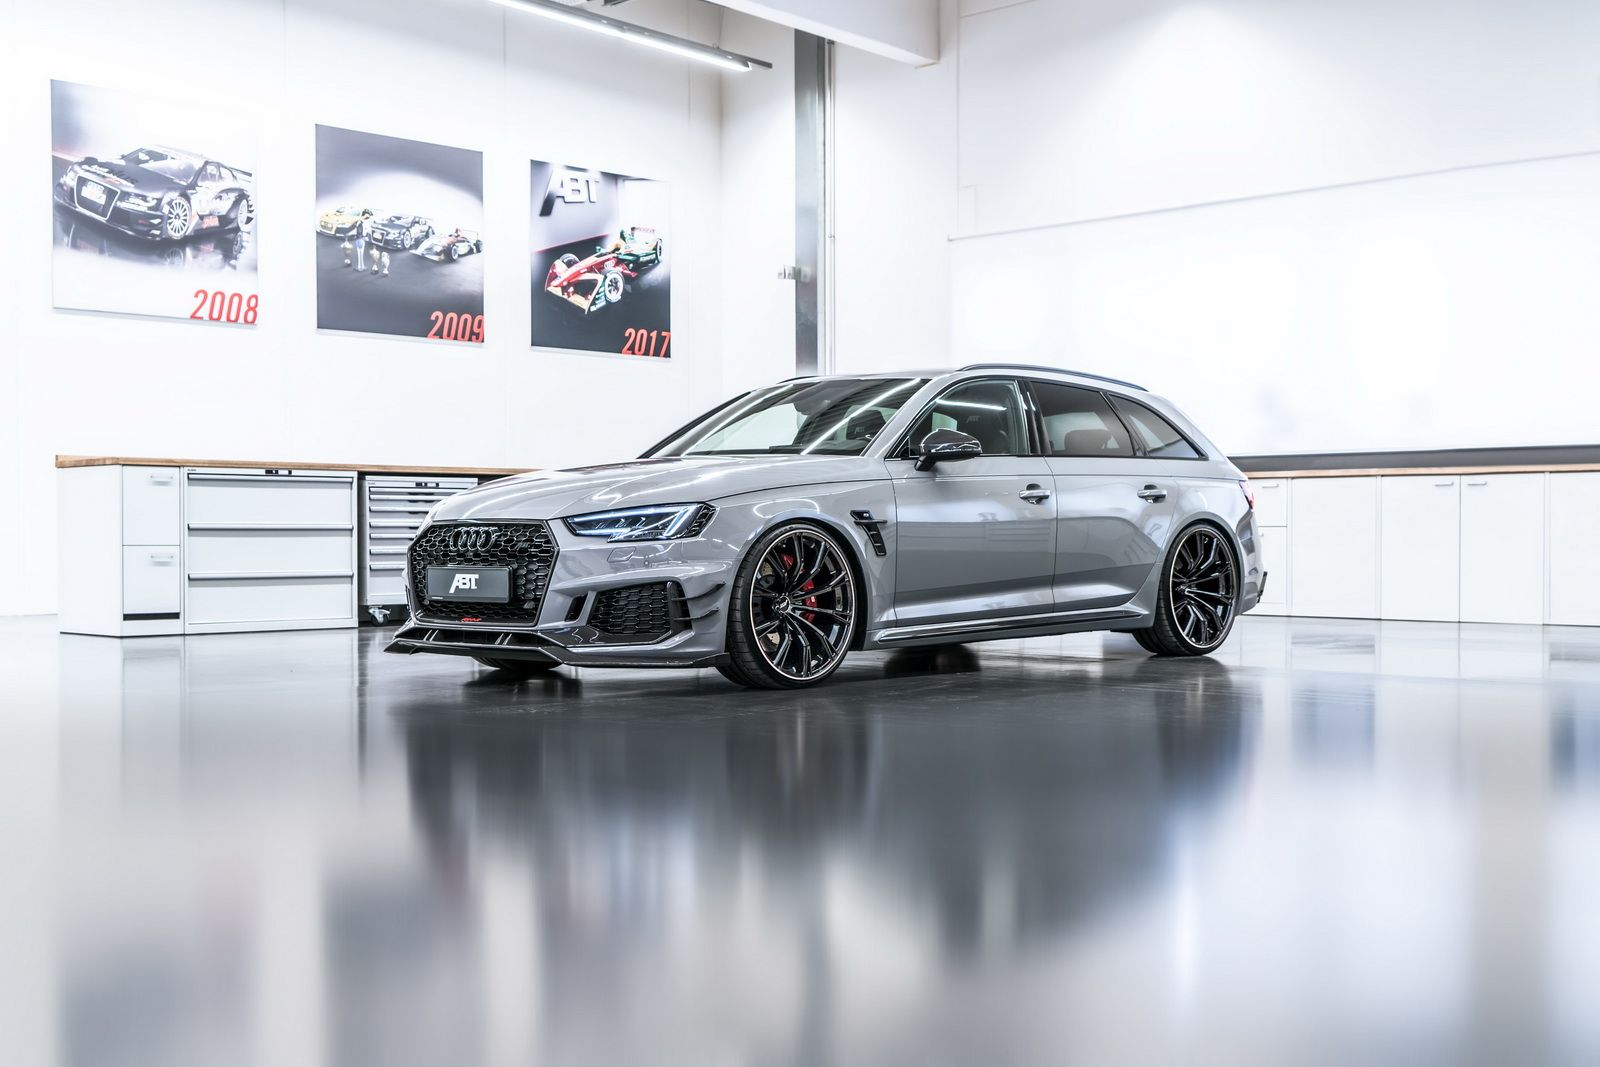 Abt S 530ps Audi Rs4 R Avant Is All The Super Estate You Ll Ever